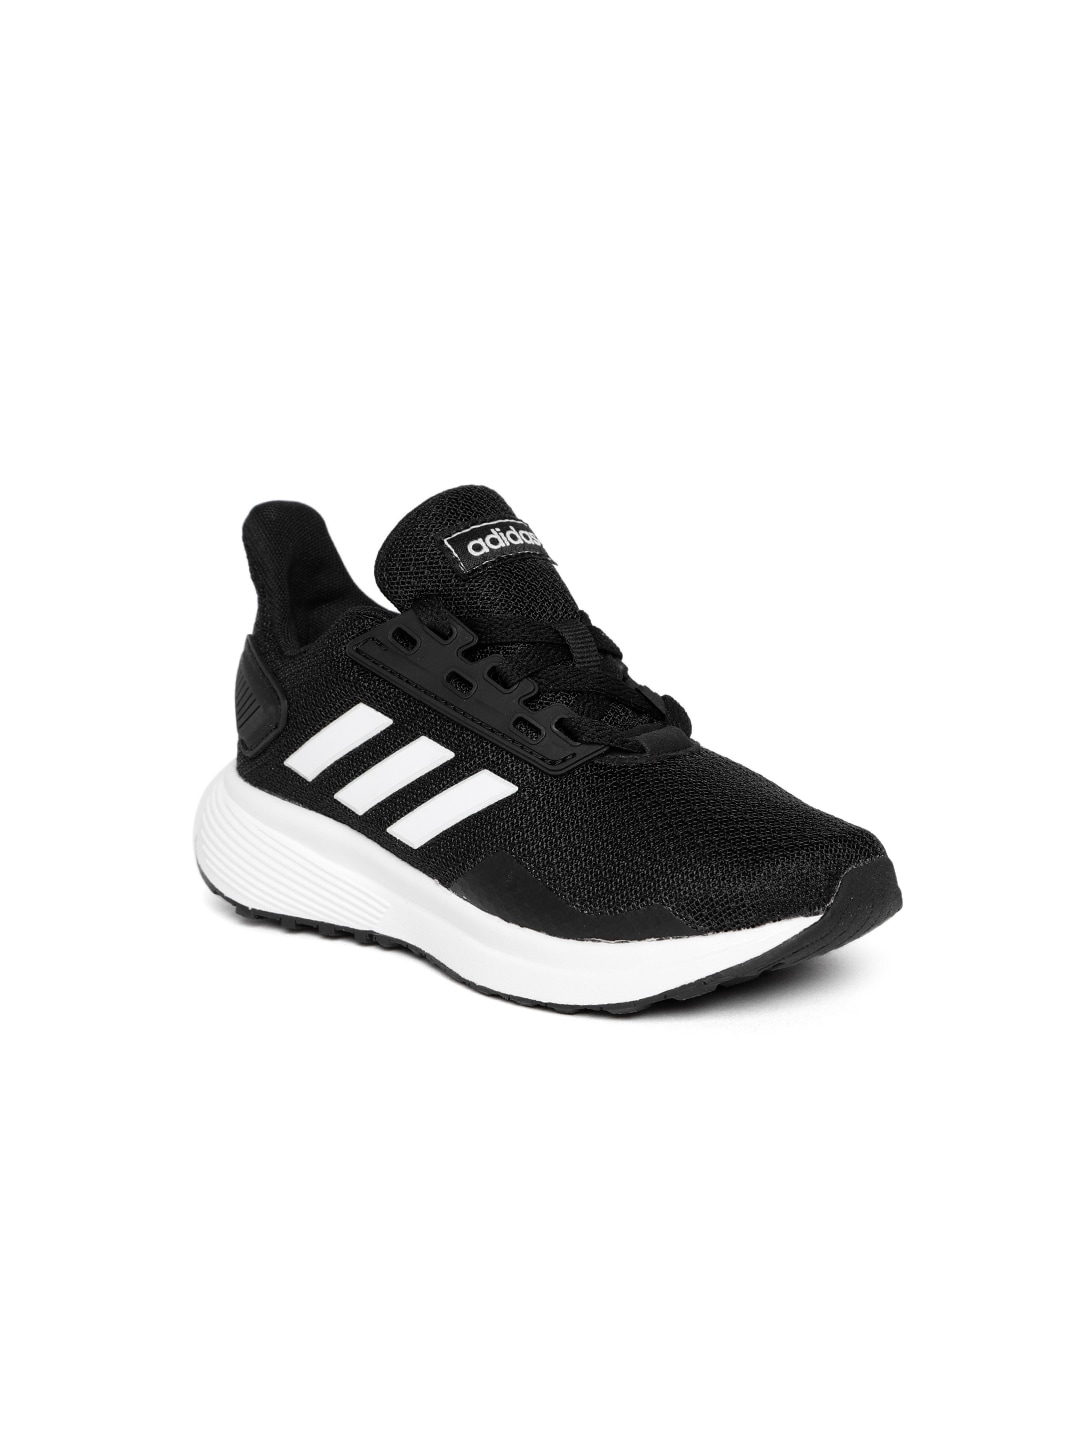 27f48f09173 Buy ADIDAS Kids Black Solid CF RACER TR K Running Shoes - Sports ...